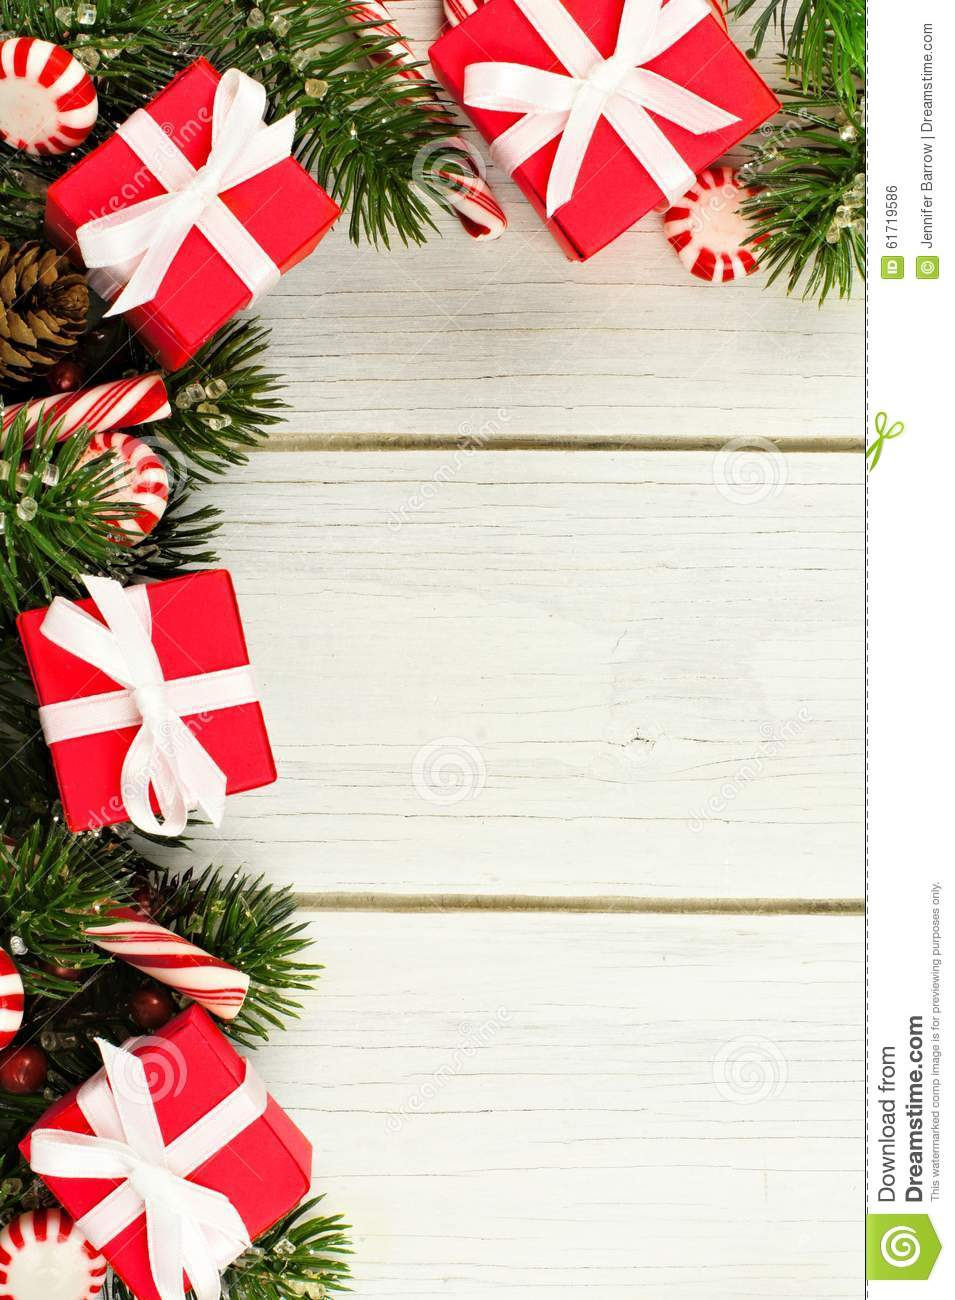 Christmas Toys Border : Christmas branches gifts and candy canes border on white